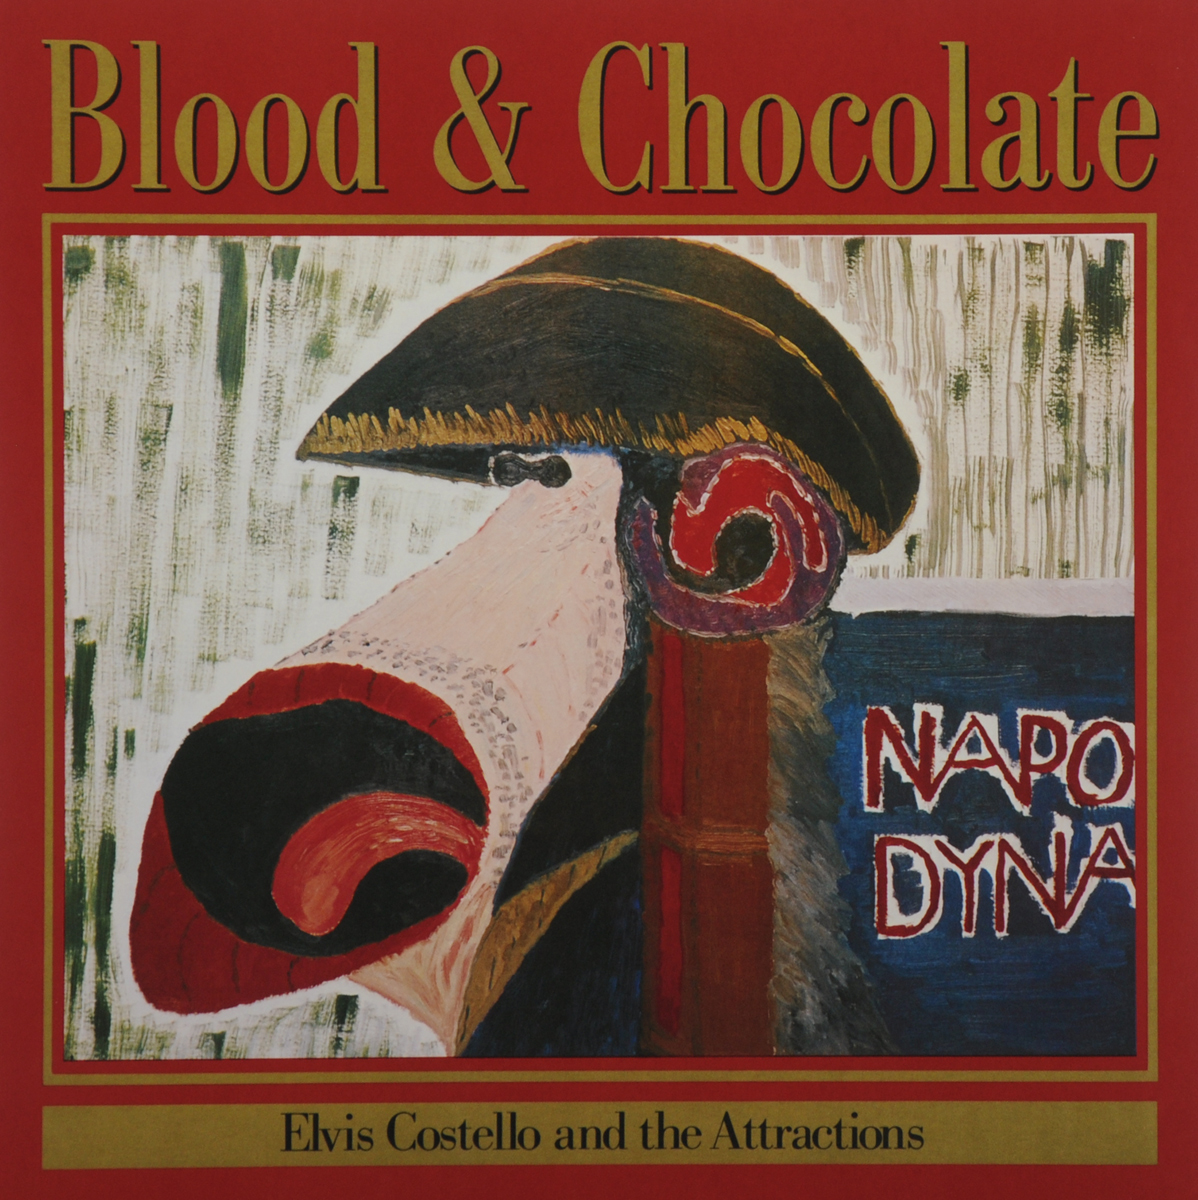 Элвис Костелло,The Attractions Elvis Costello And The Attractions. Blood & Chocolate (LP) элвис костелло elvis costello taking liberties lp